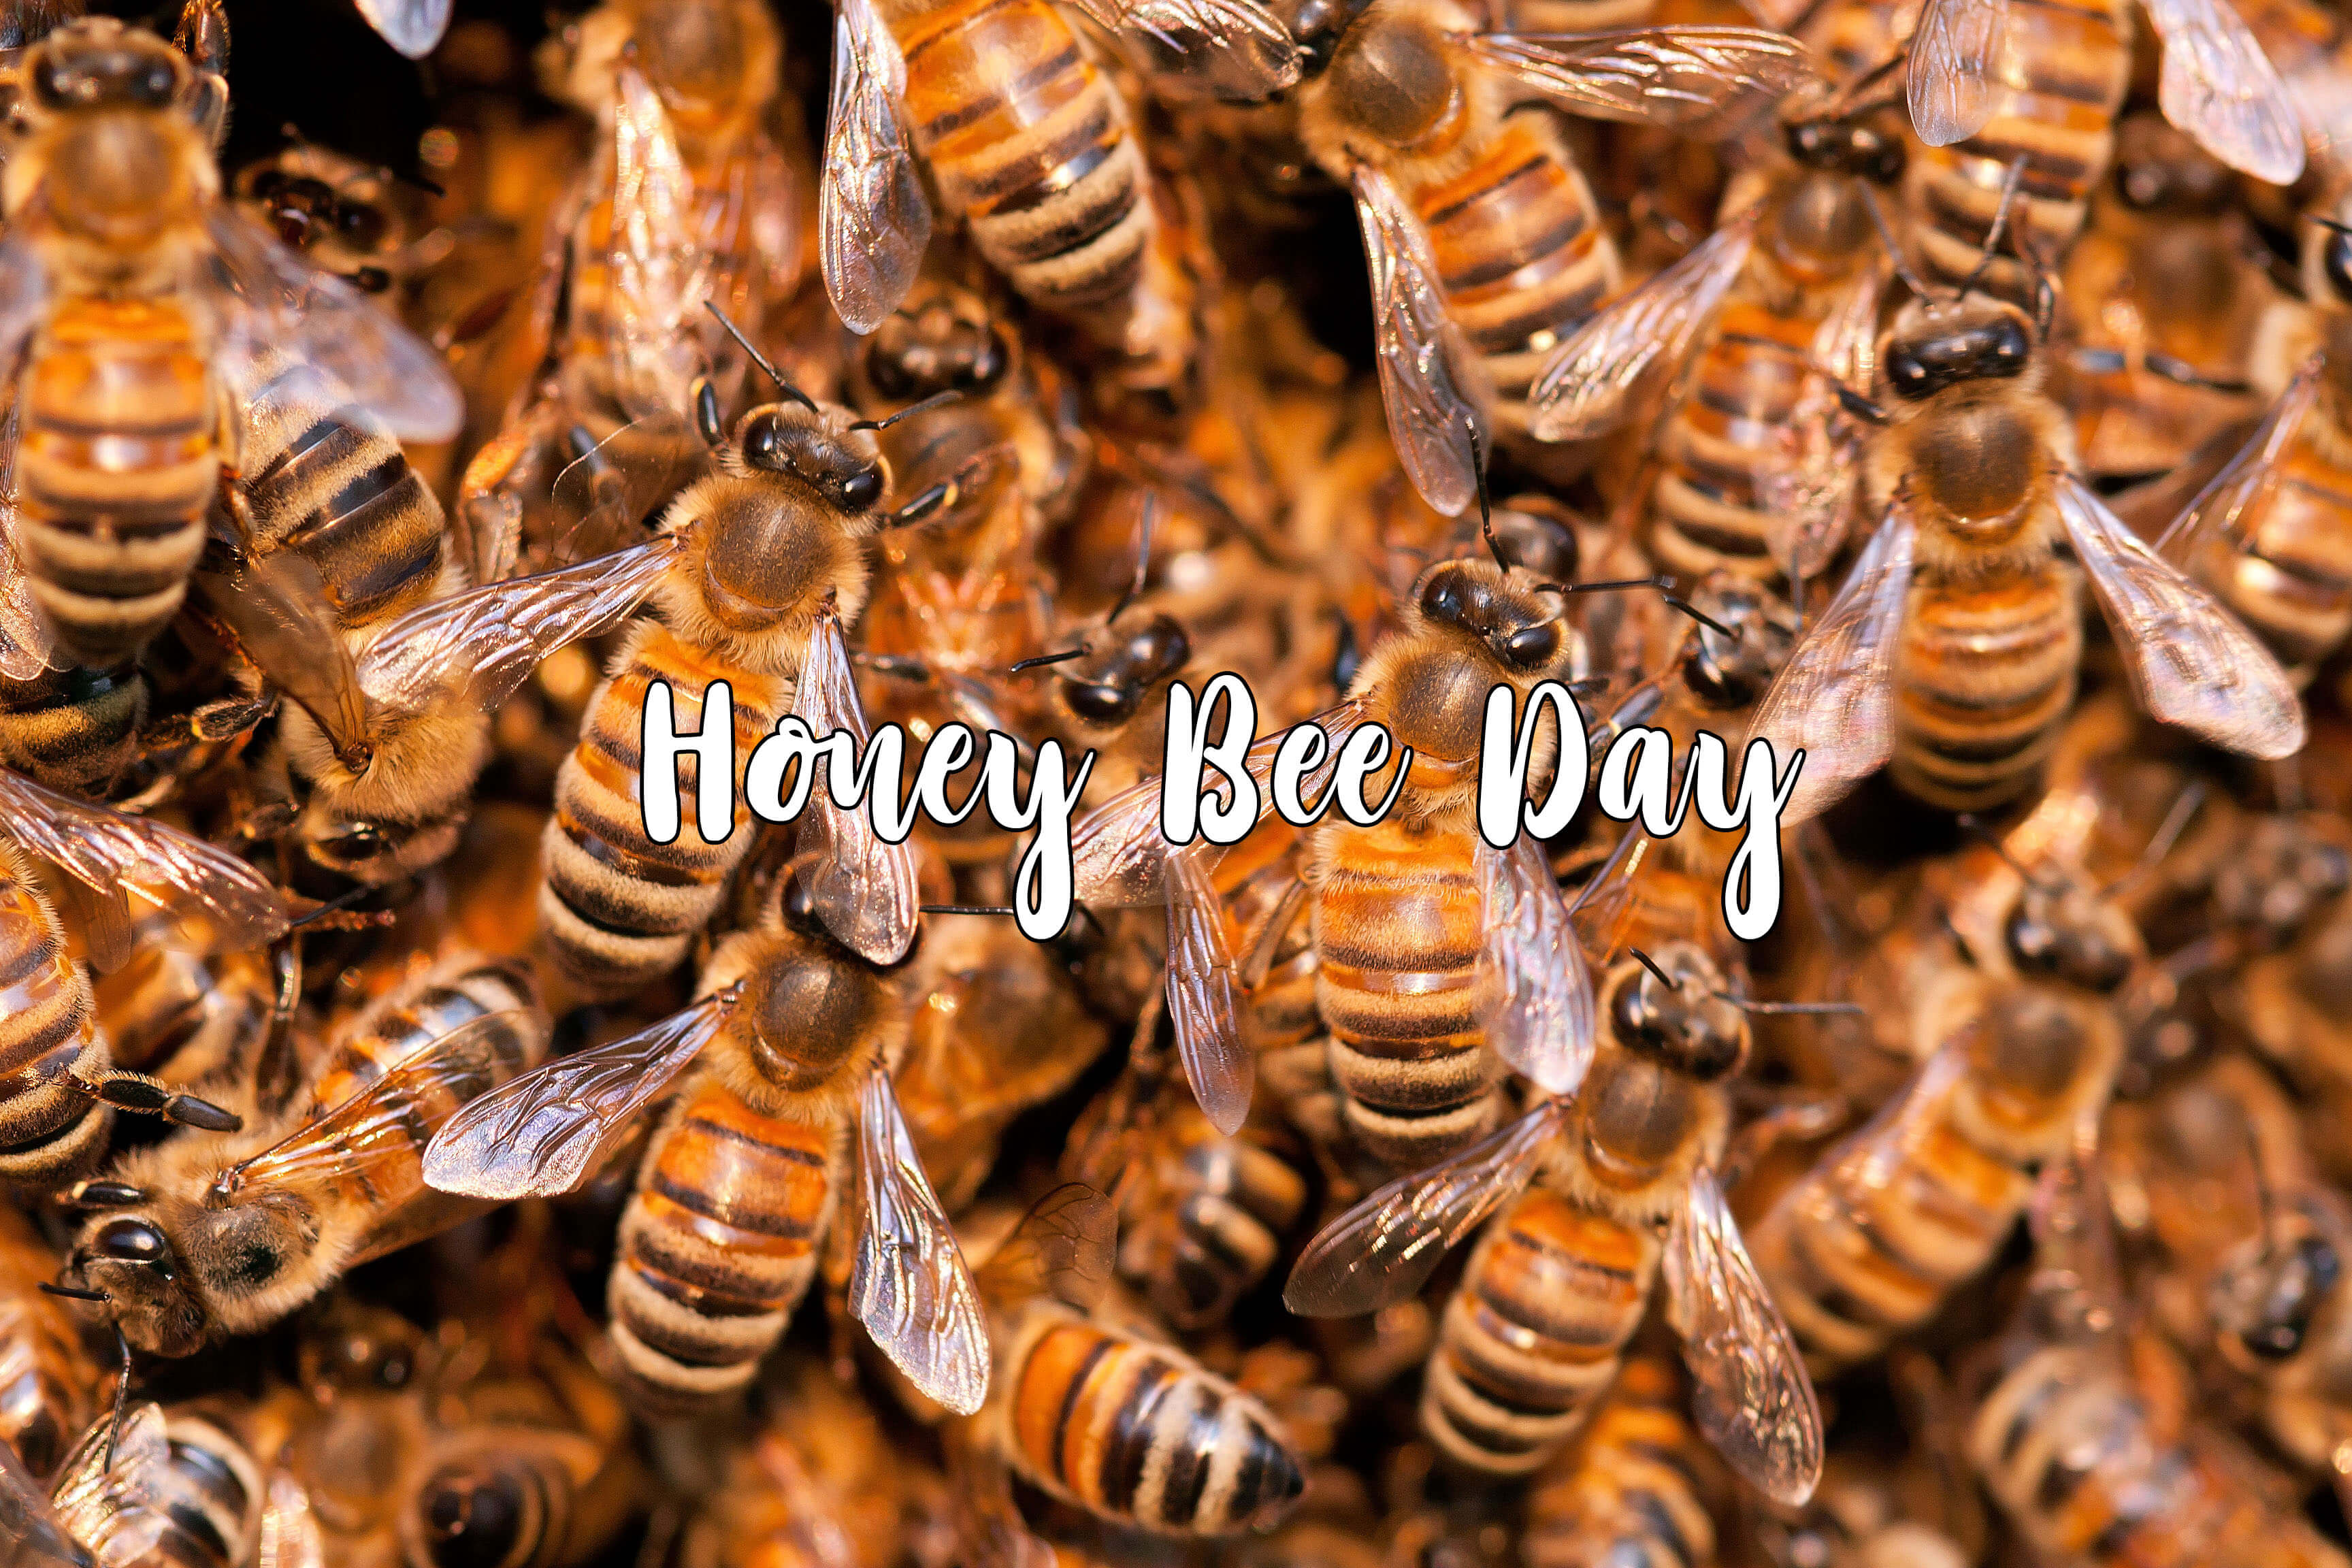 happy honey bee day swarm colony image pc hd wallpaper